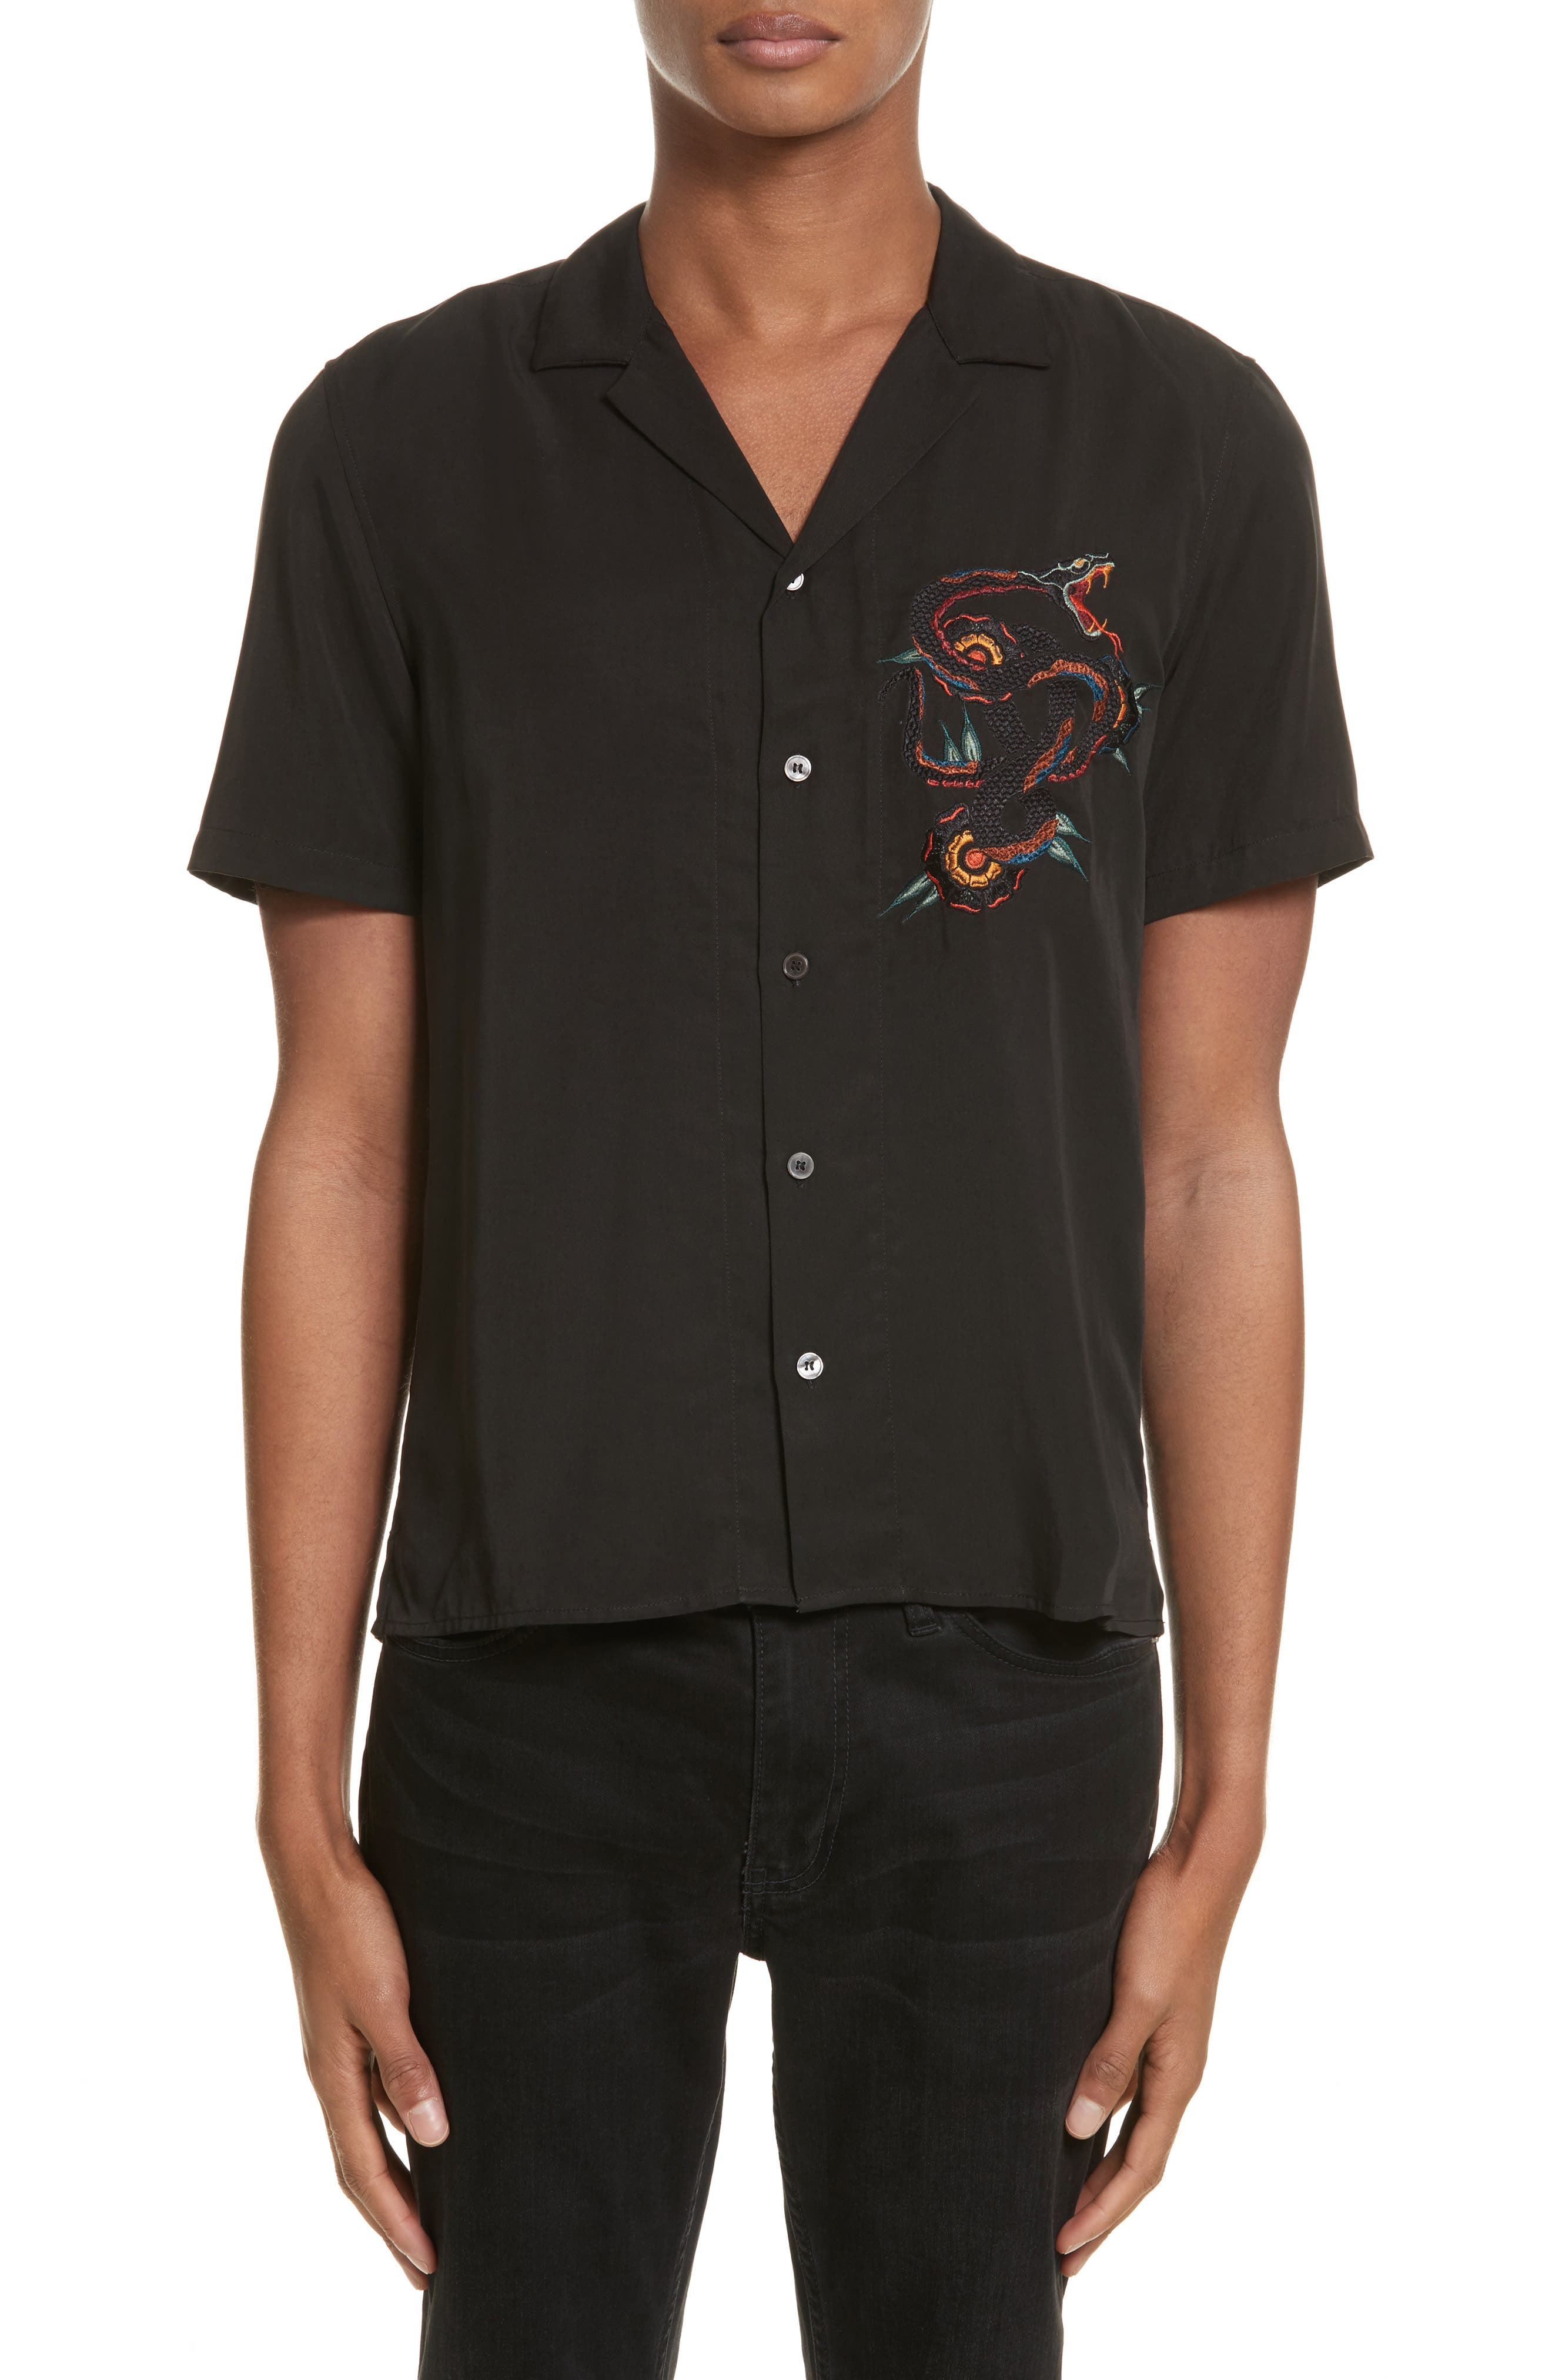 The Kooples Embroidered Snake Camp Shirt